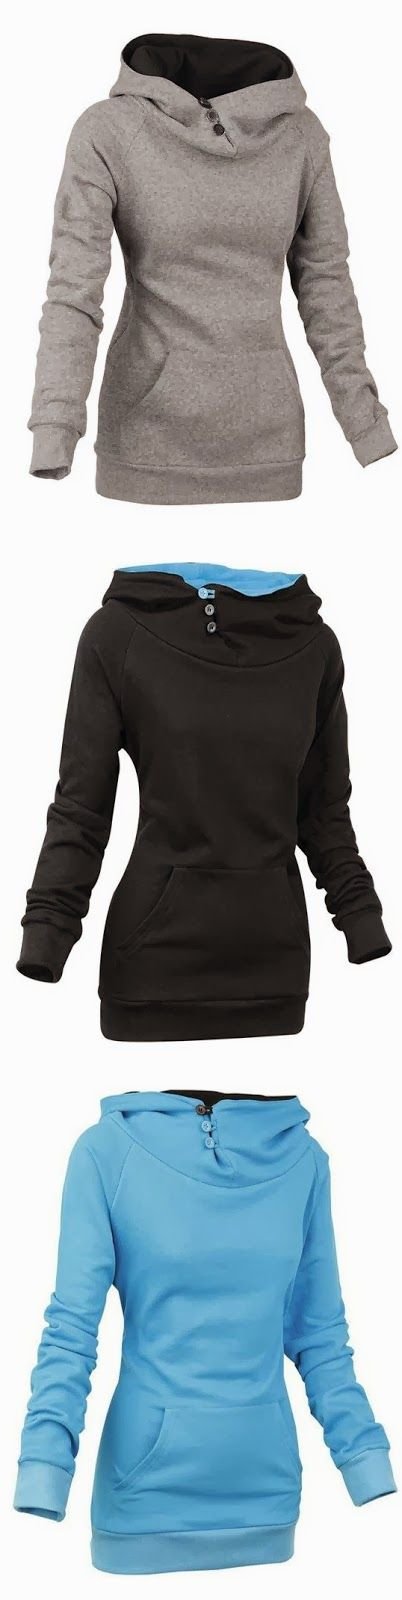 Comfy and Cozy long sleeve women hoodie